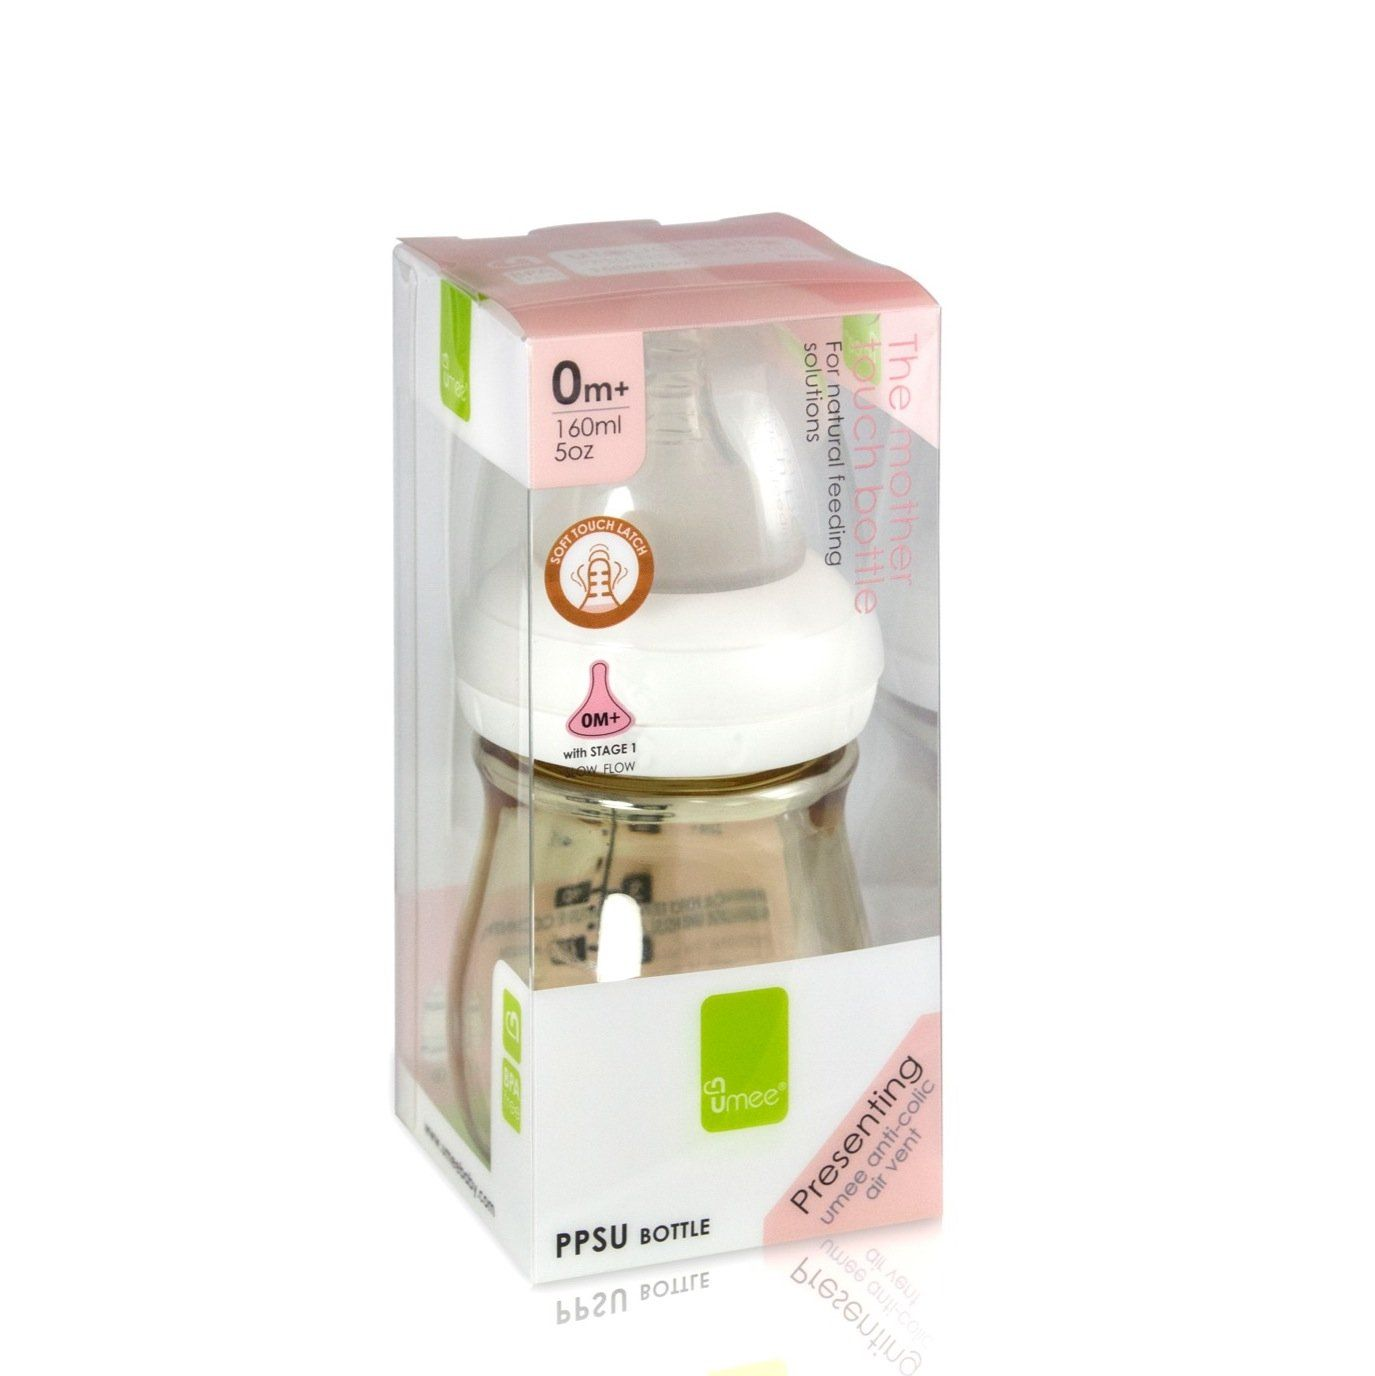 PPSU 160ml/5oz Feeding Bottle